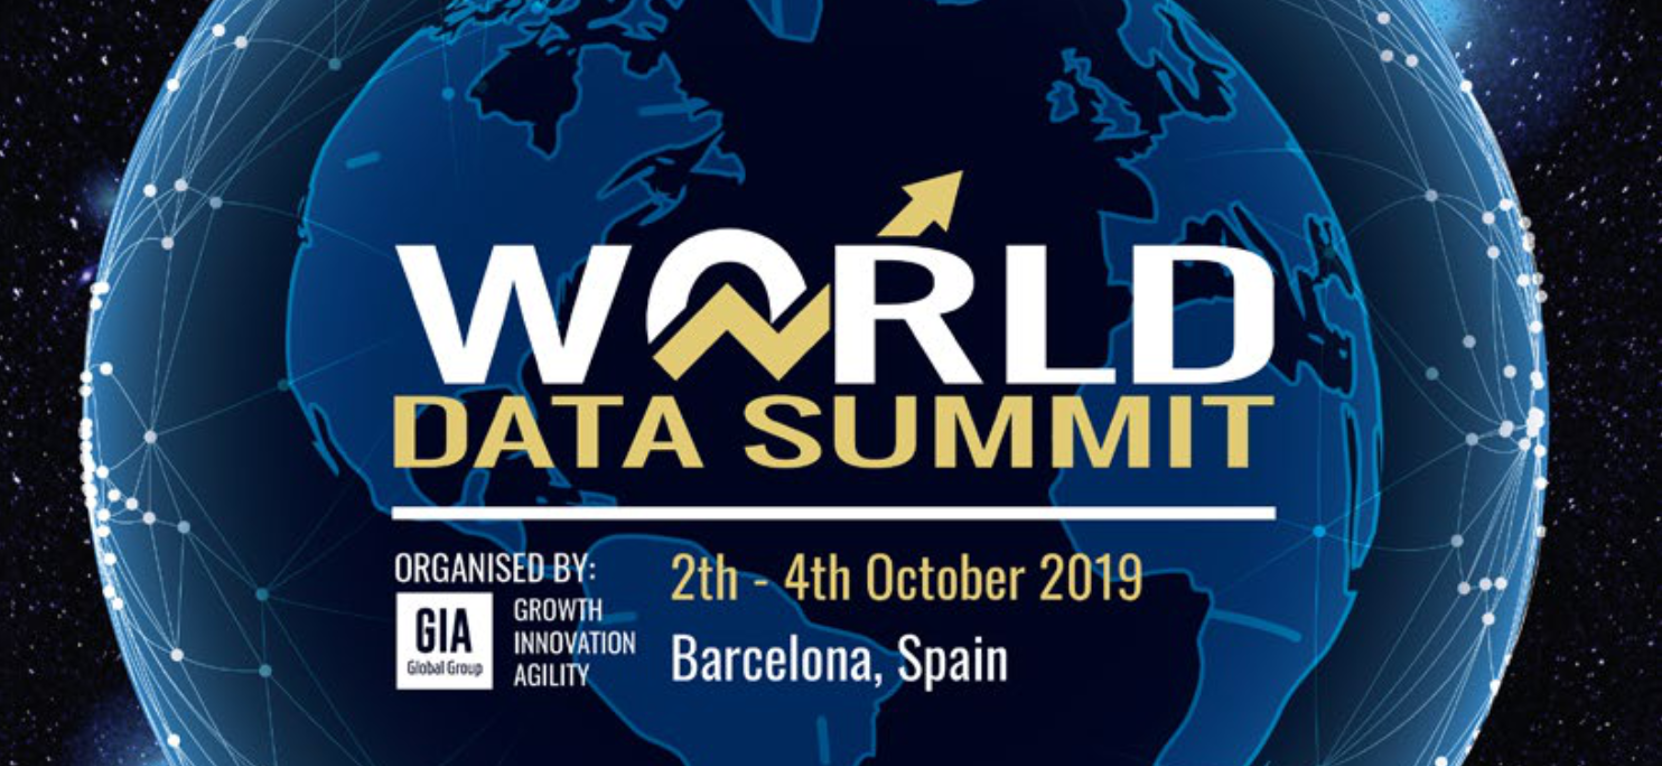 World Data Sumit 2019